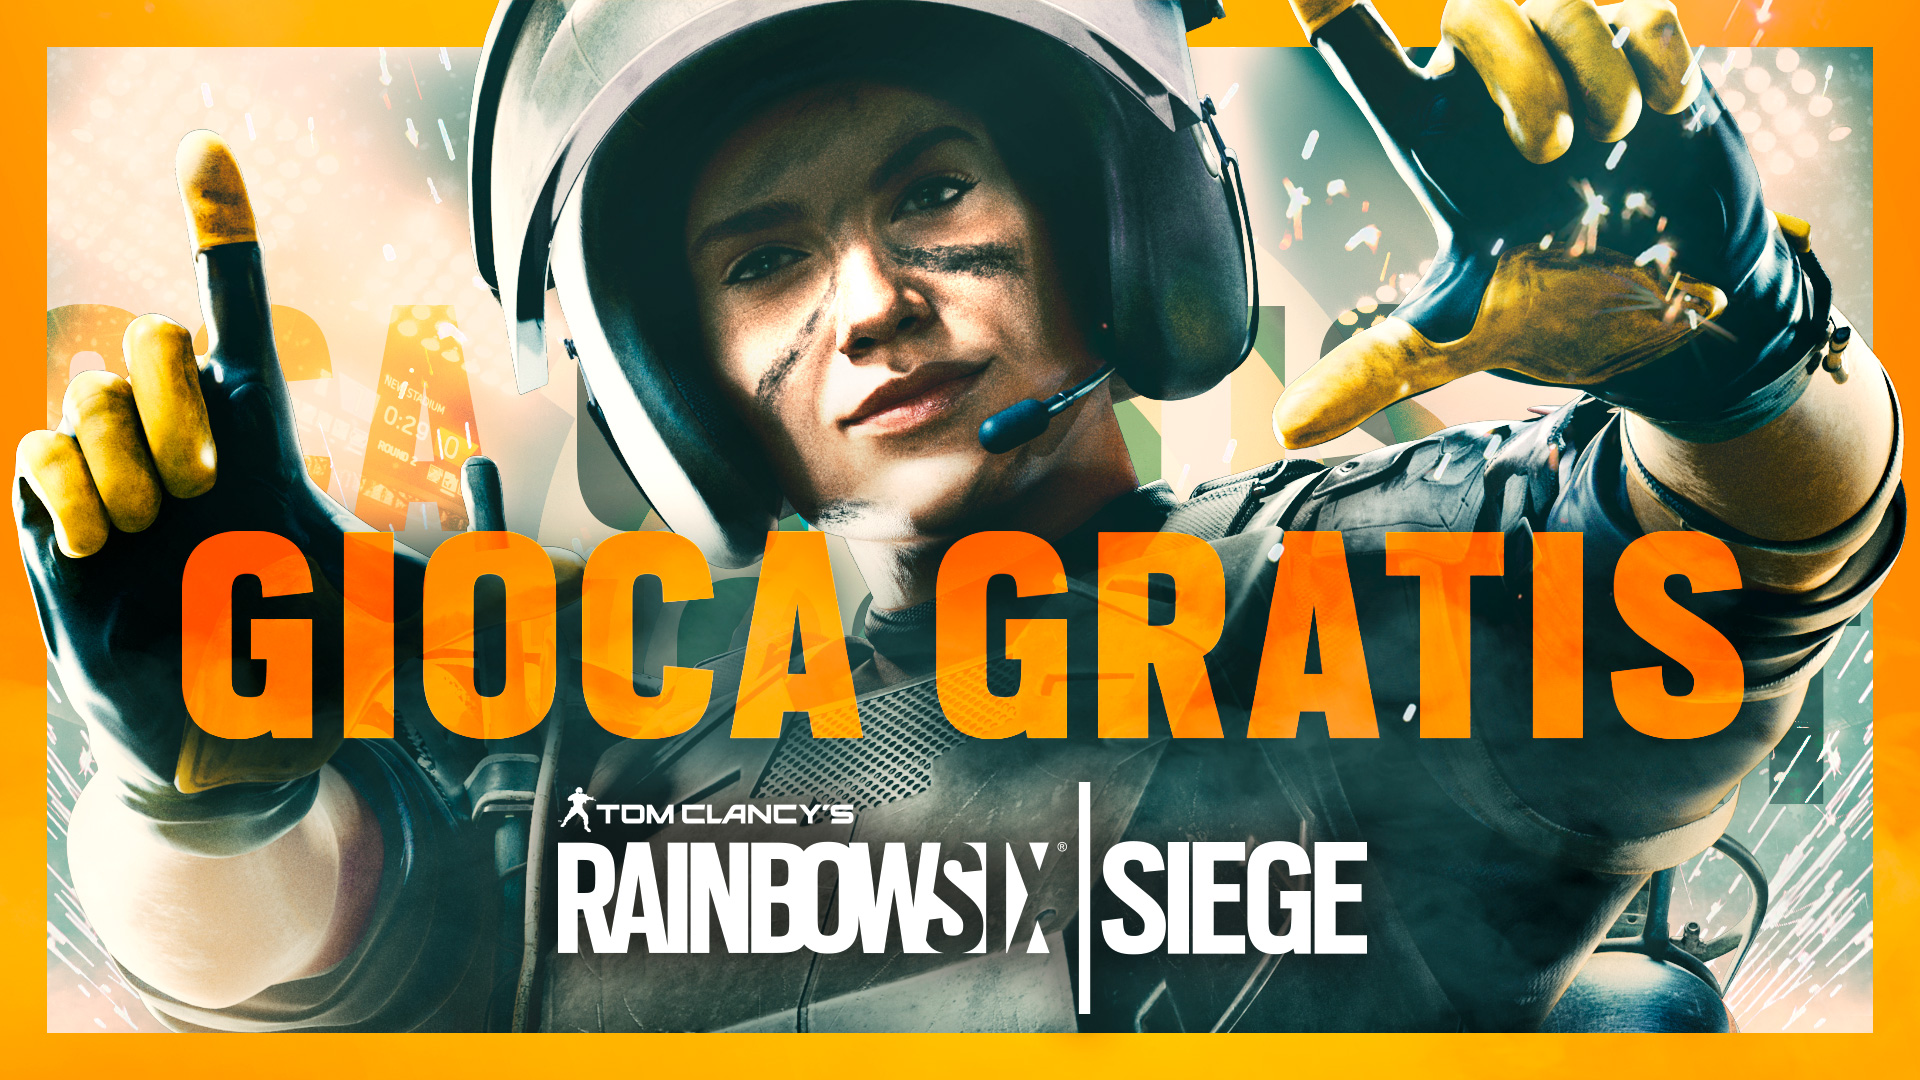 In arrivo un weekend di gioco gratuito per Tom Clancy's Rainbow Six Siege thumbnail